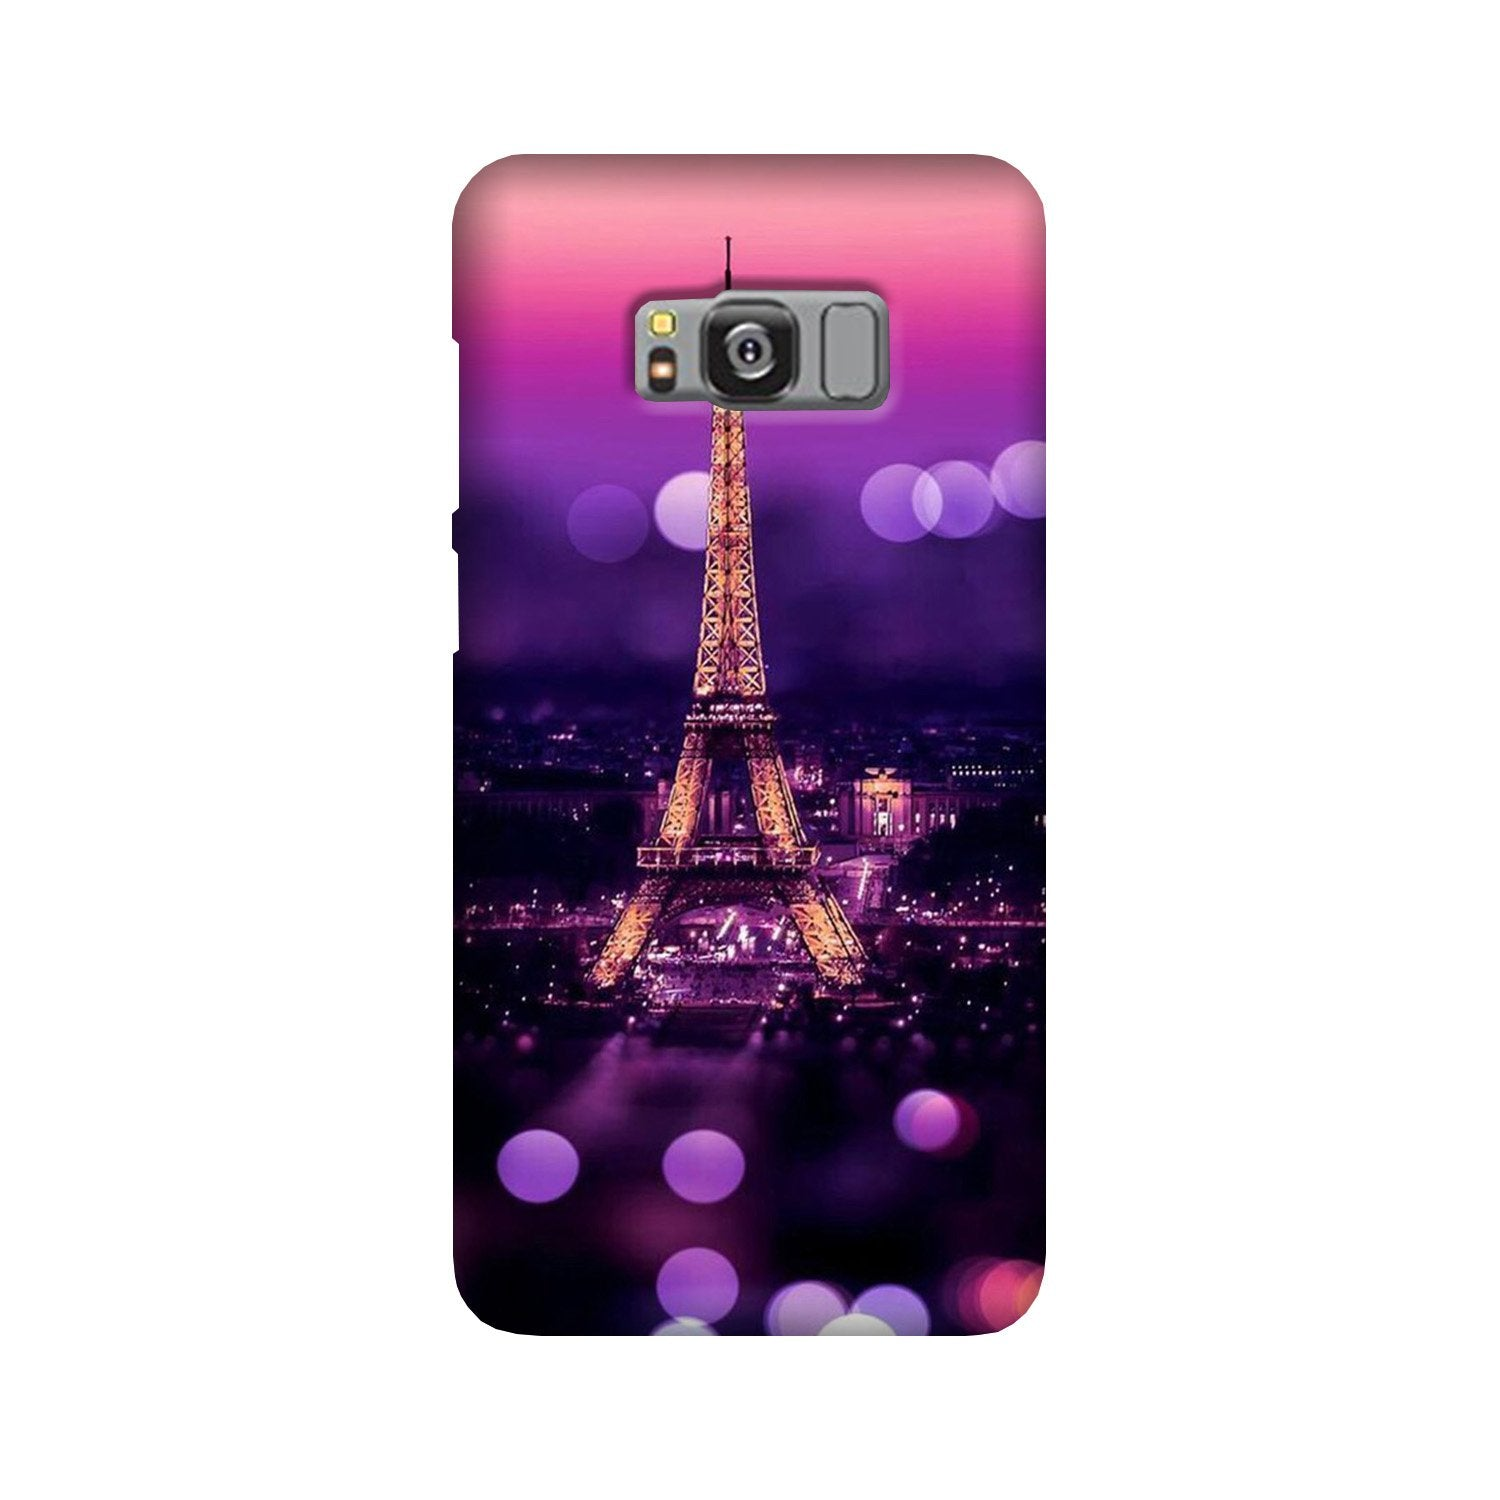 Eiffel Tower Case for Galaxy S8 Plus